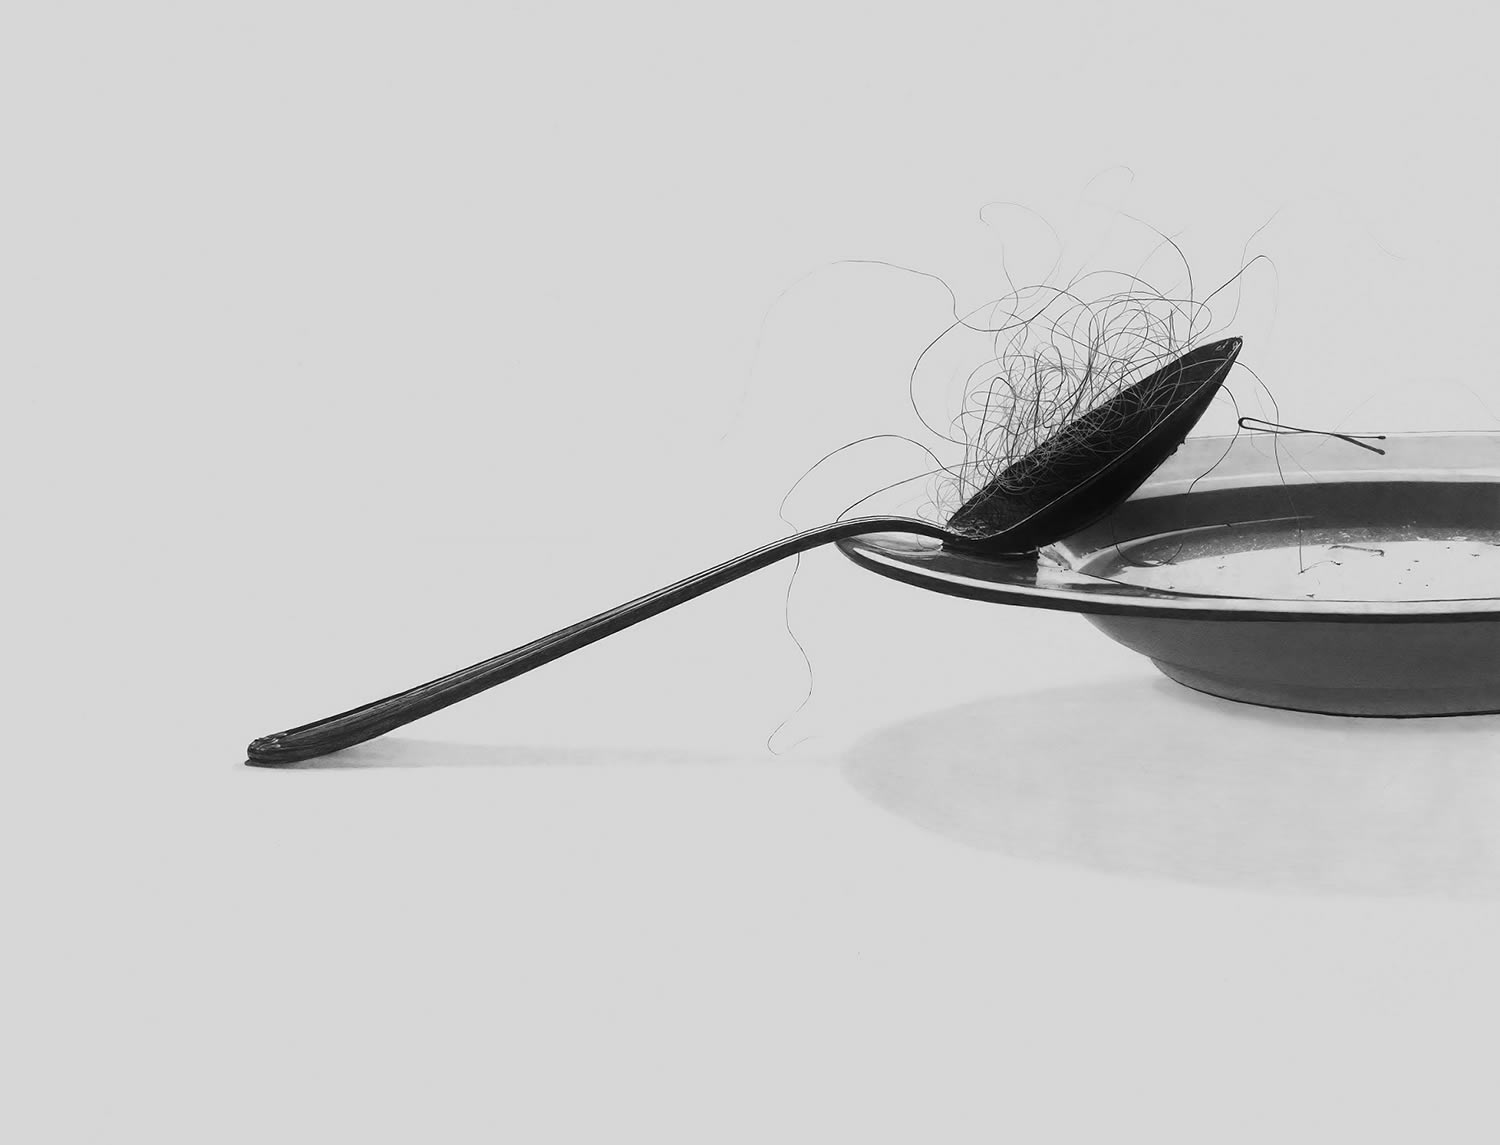 hairy spoon, and plate, drawing